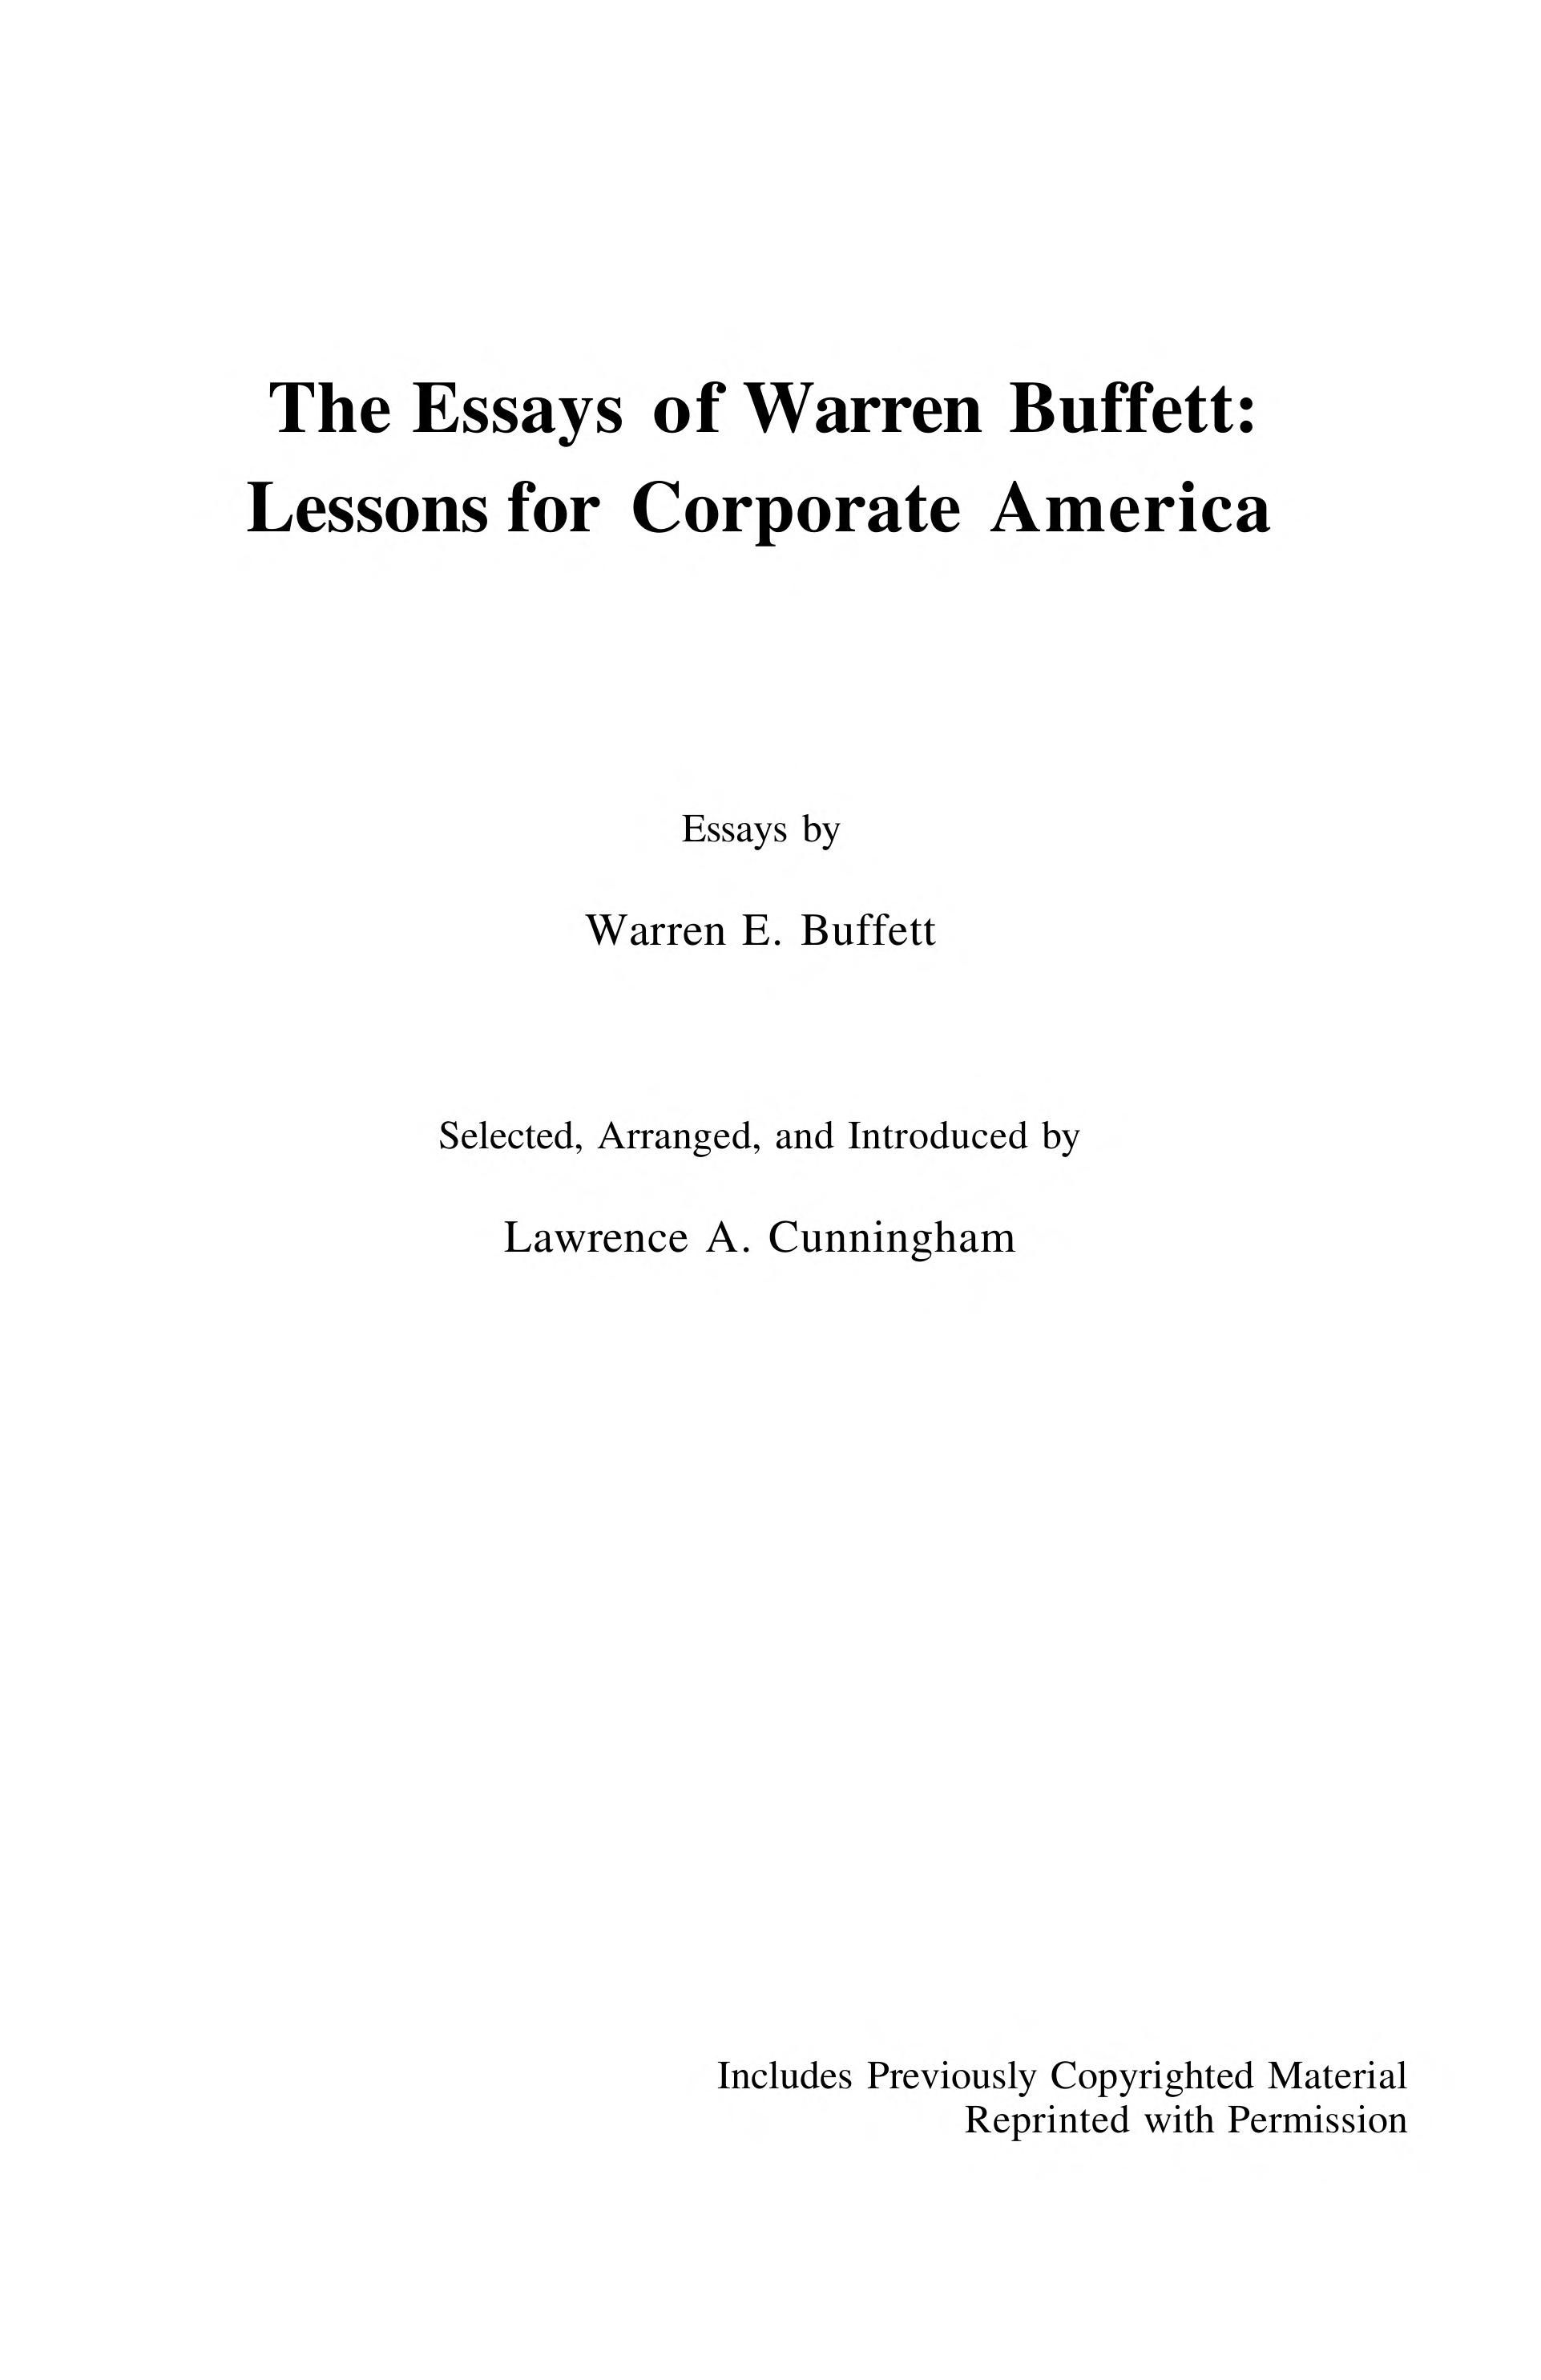 019 The Essays Of Warren Buffett Lessons For Corporate America Essay Example Remarkable Third Edition 3rd Second Pdf Audio Book Full